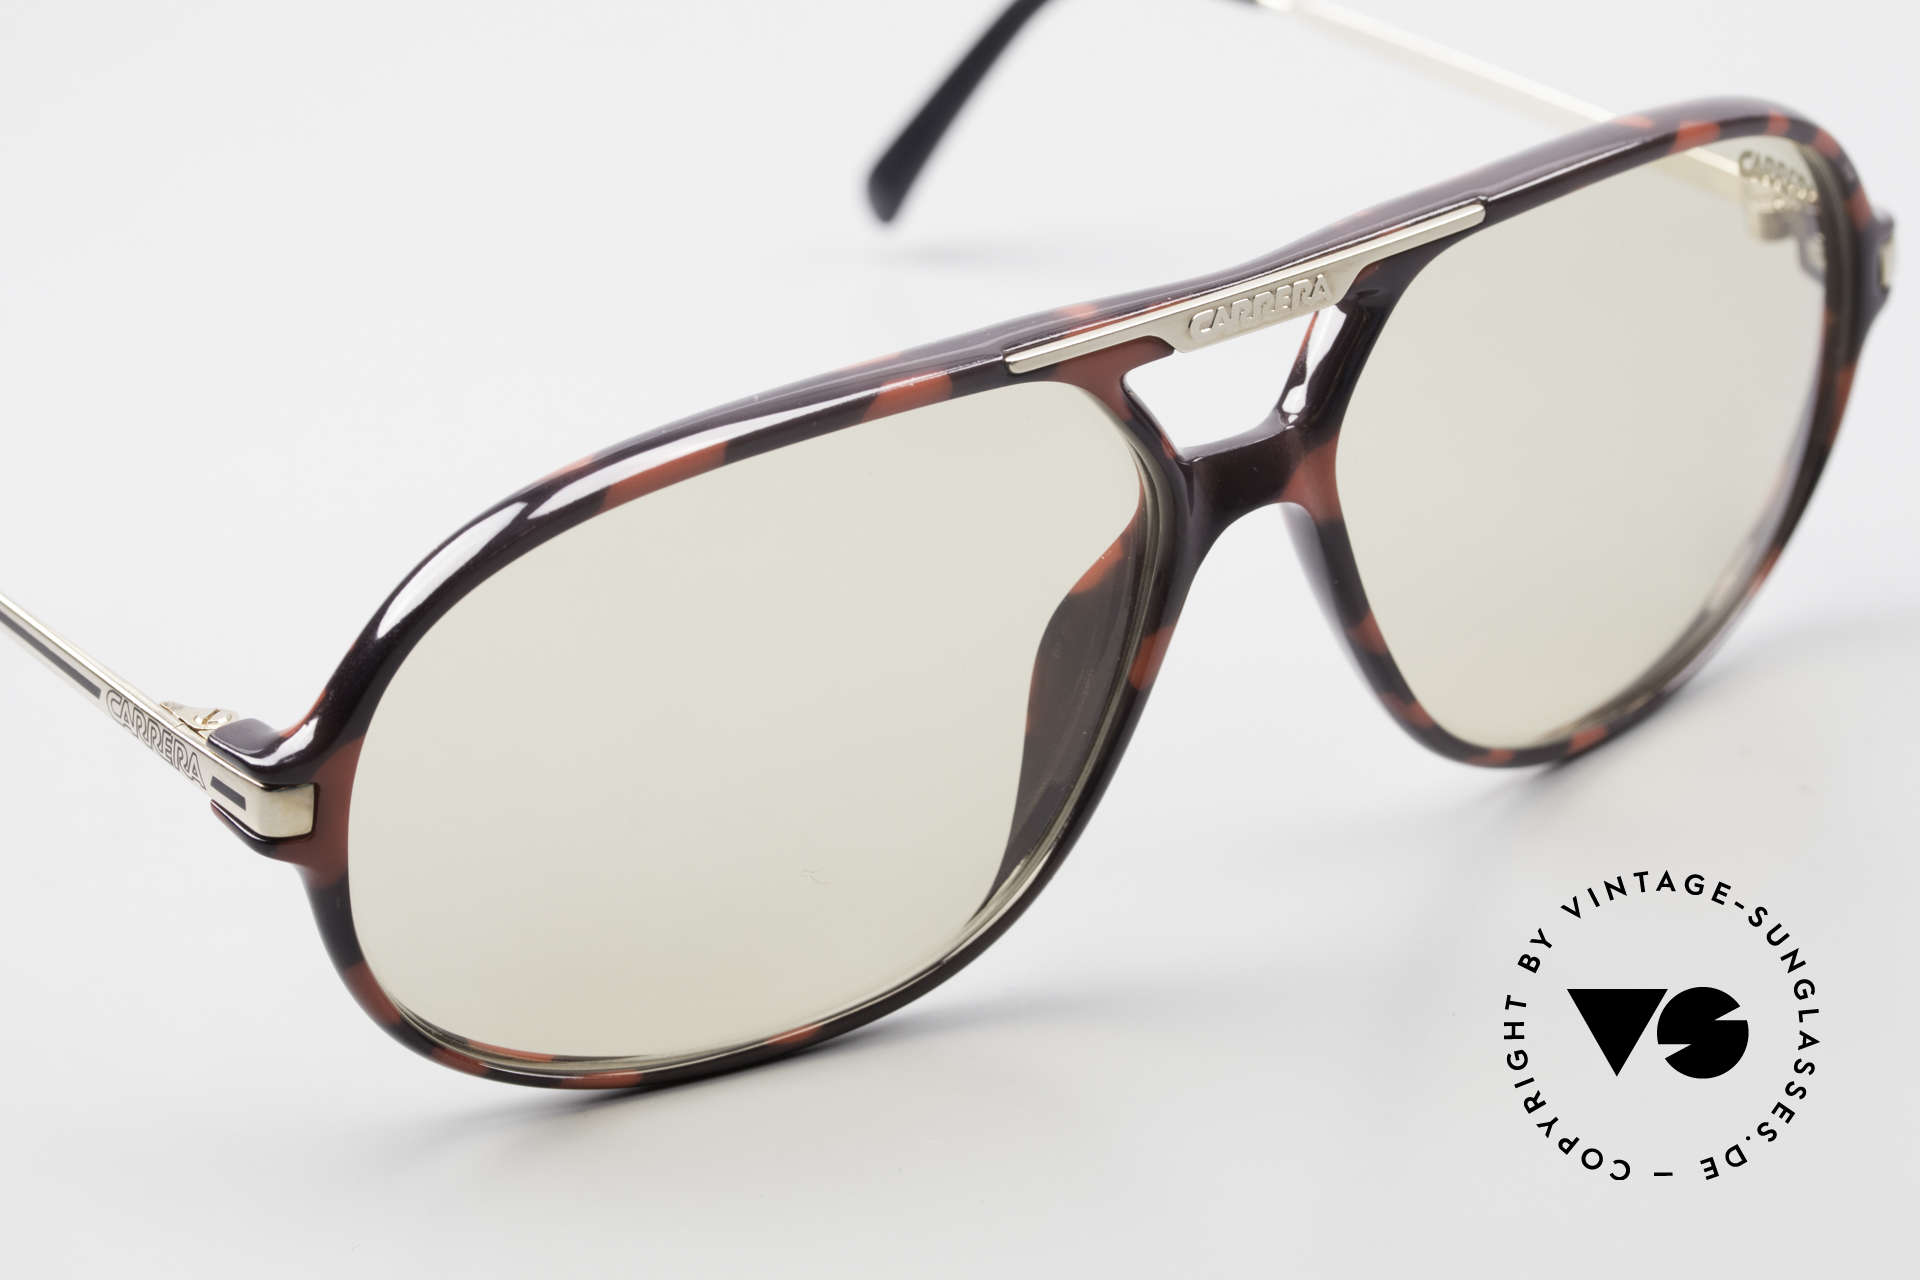 Carrera 5411 C-Matic Photochromic Automatic Lens, unworn rarity - single and true VINTAGE commodity, Made for Men